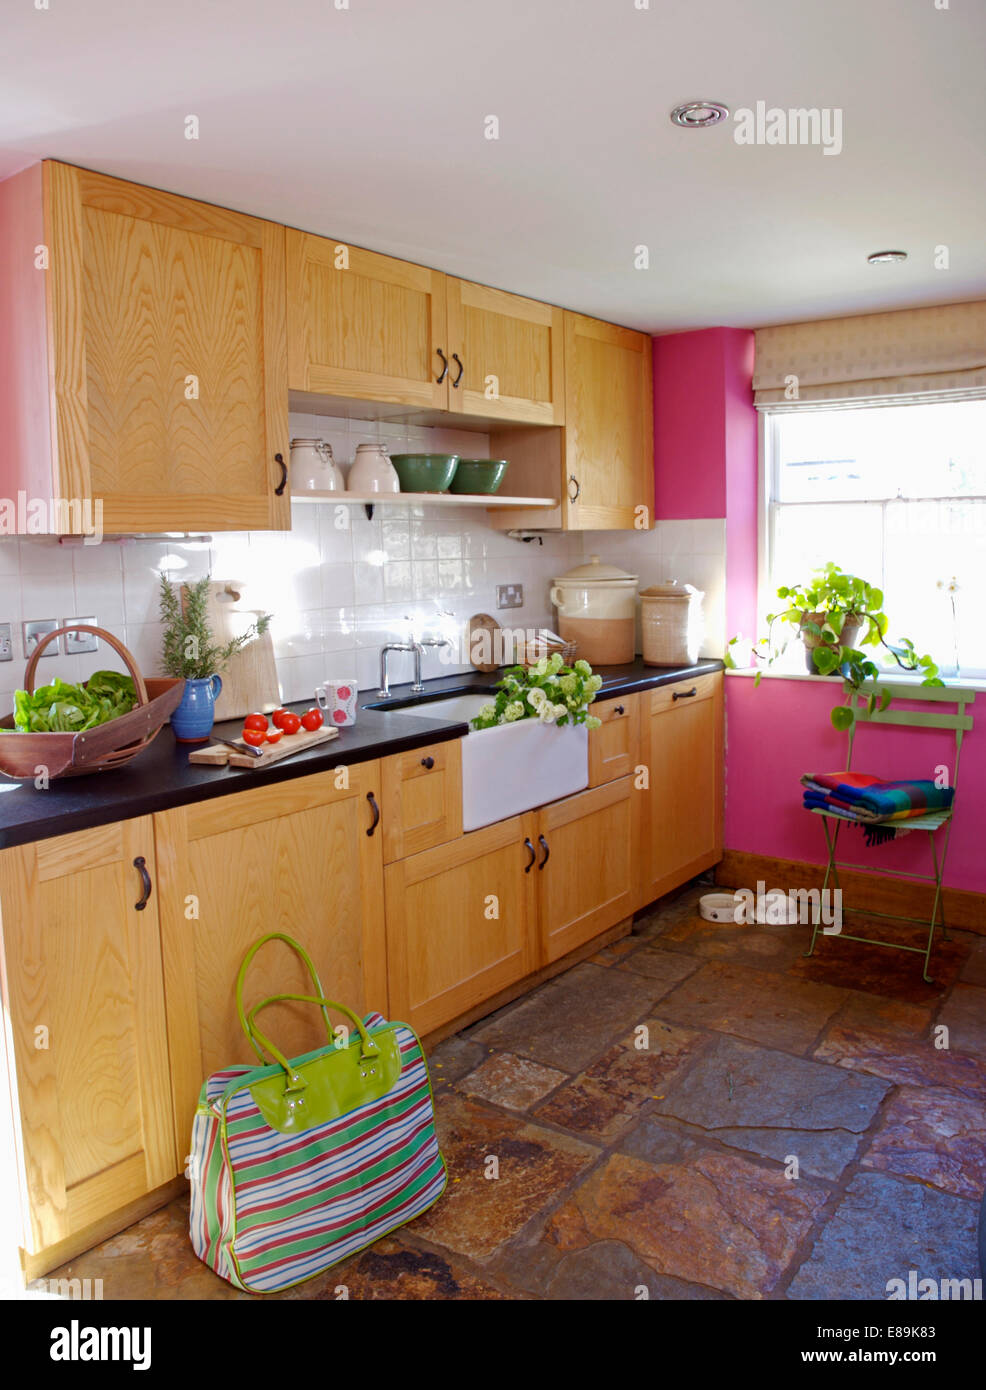 All Pink Kitchen Greenstriped Holdall On Stoneflagged Floor In Pink Kitchen With